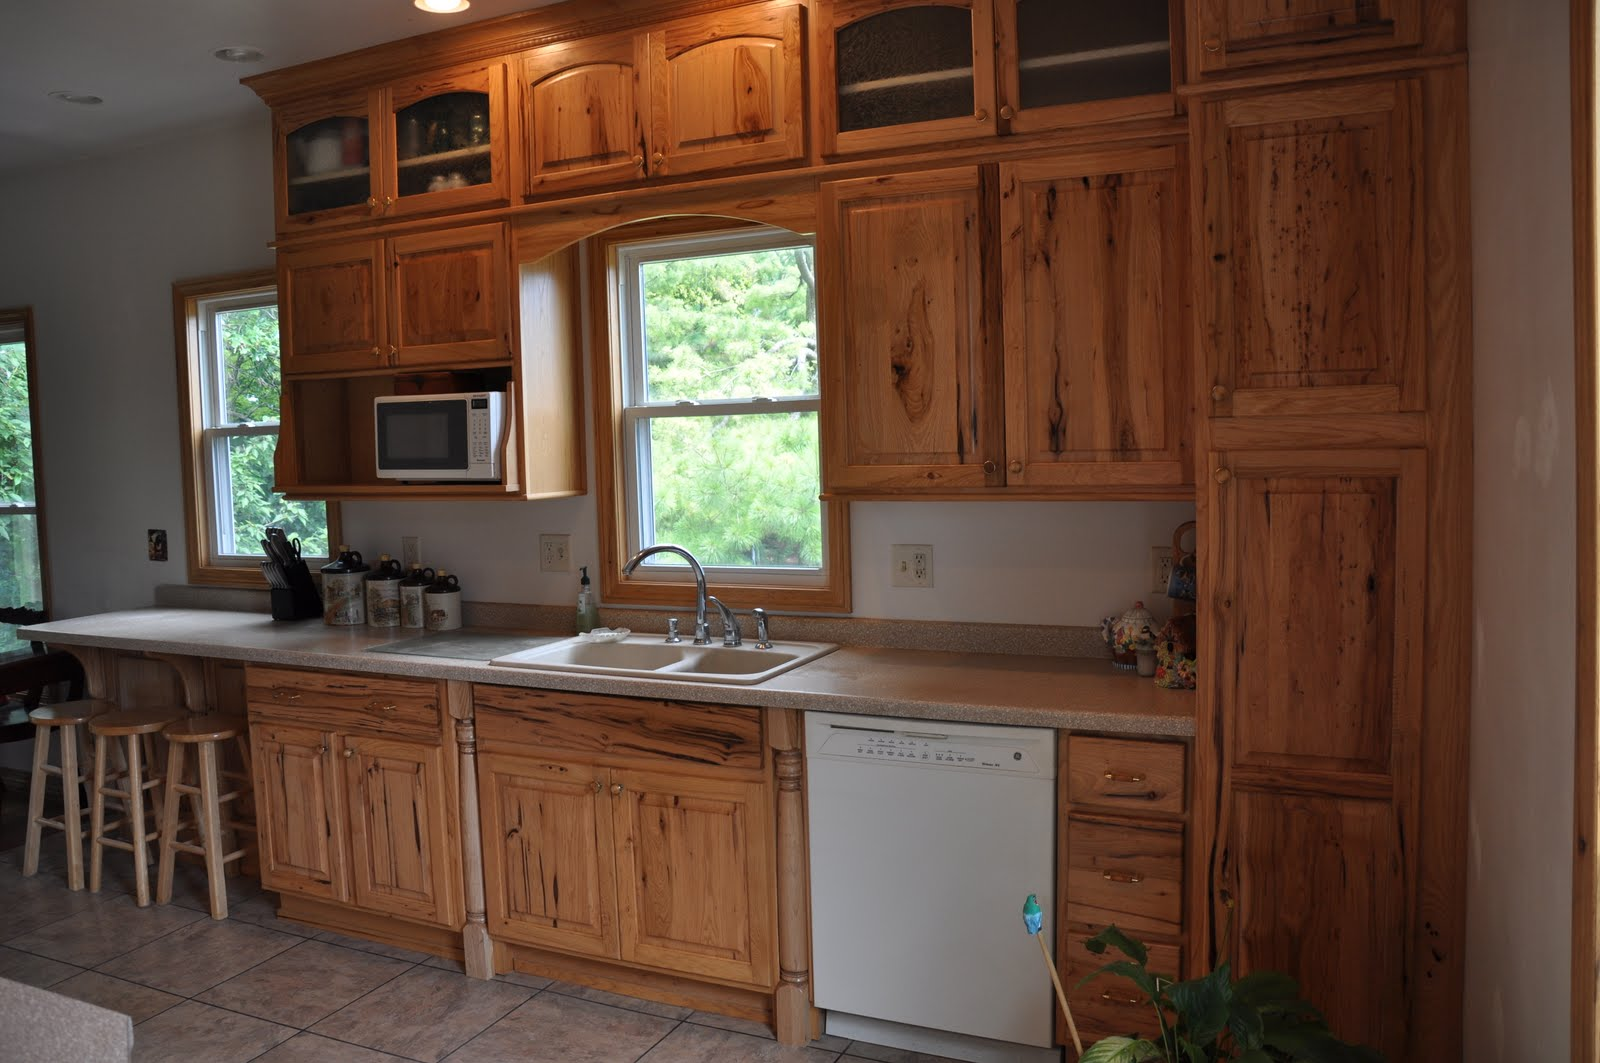 custom cabinet doors by mdf mdf kitchen cabinet doors The Awesome Custom Cabinet Doors By Mdf Photo